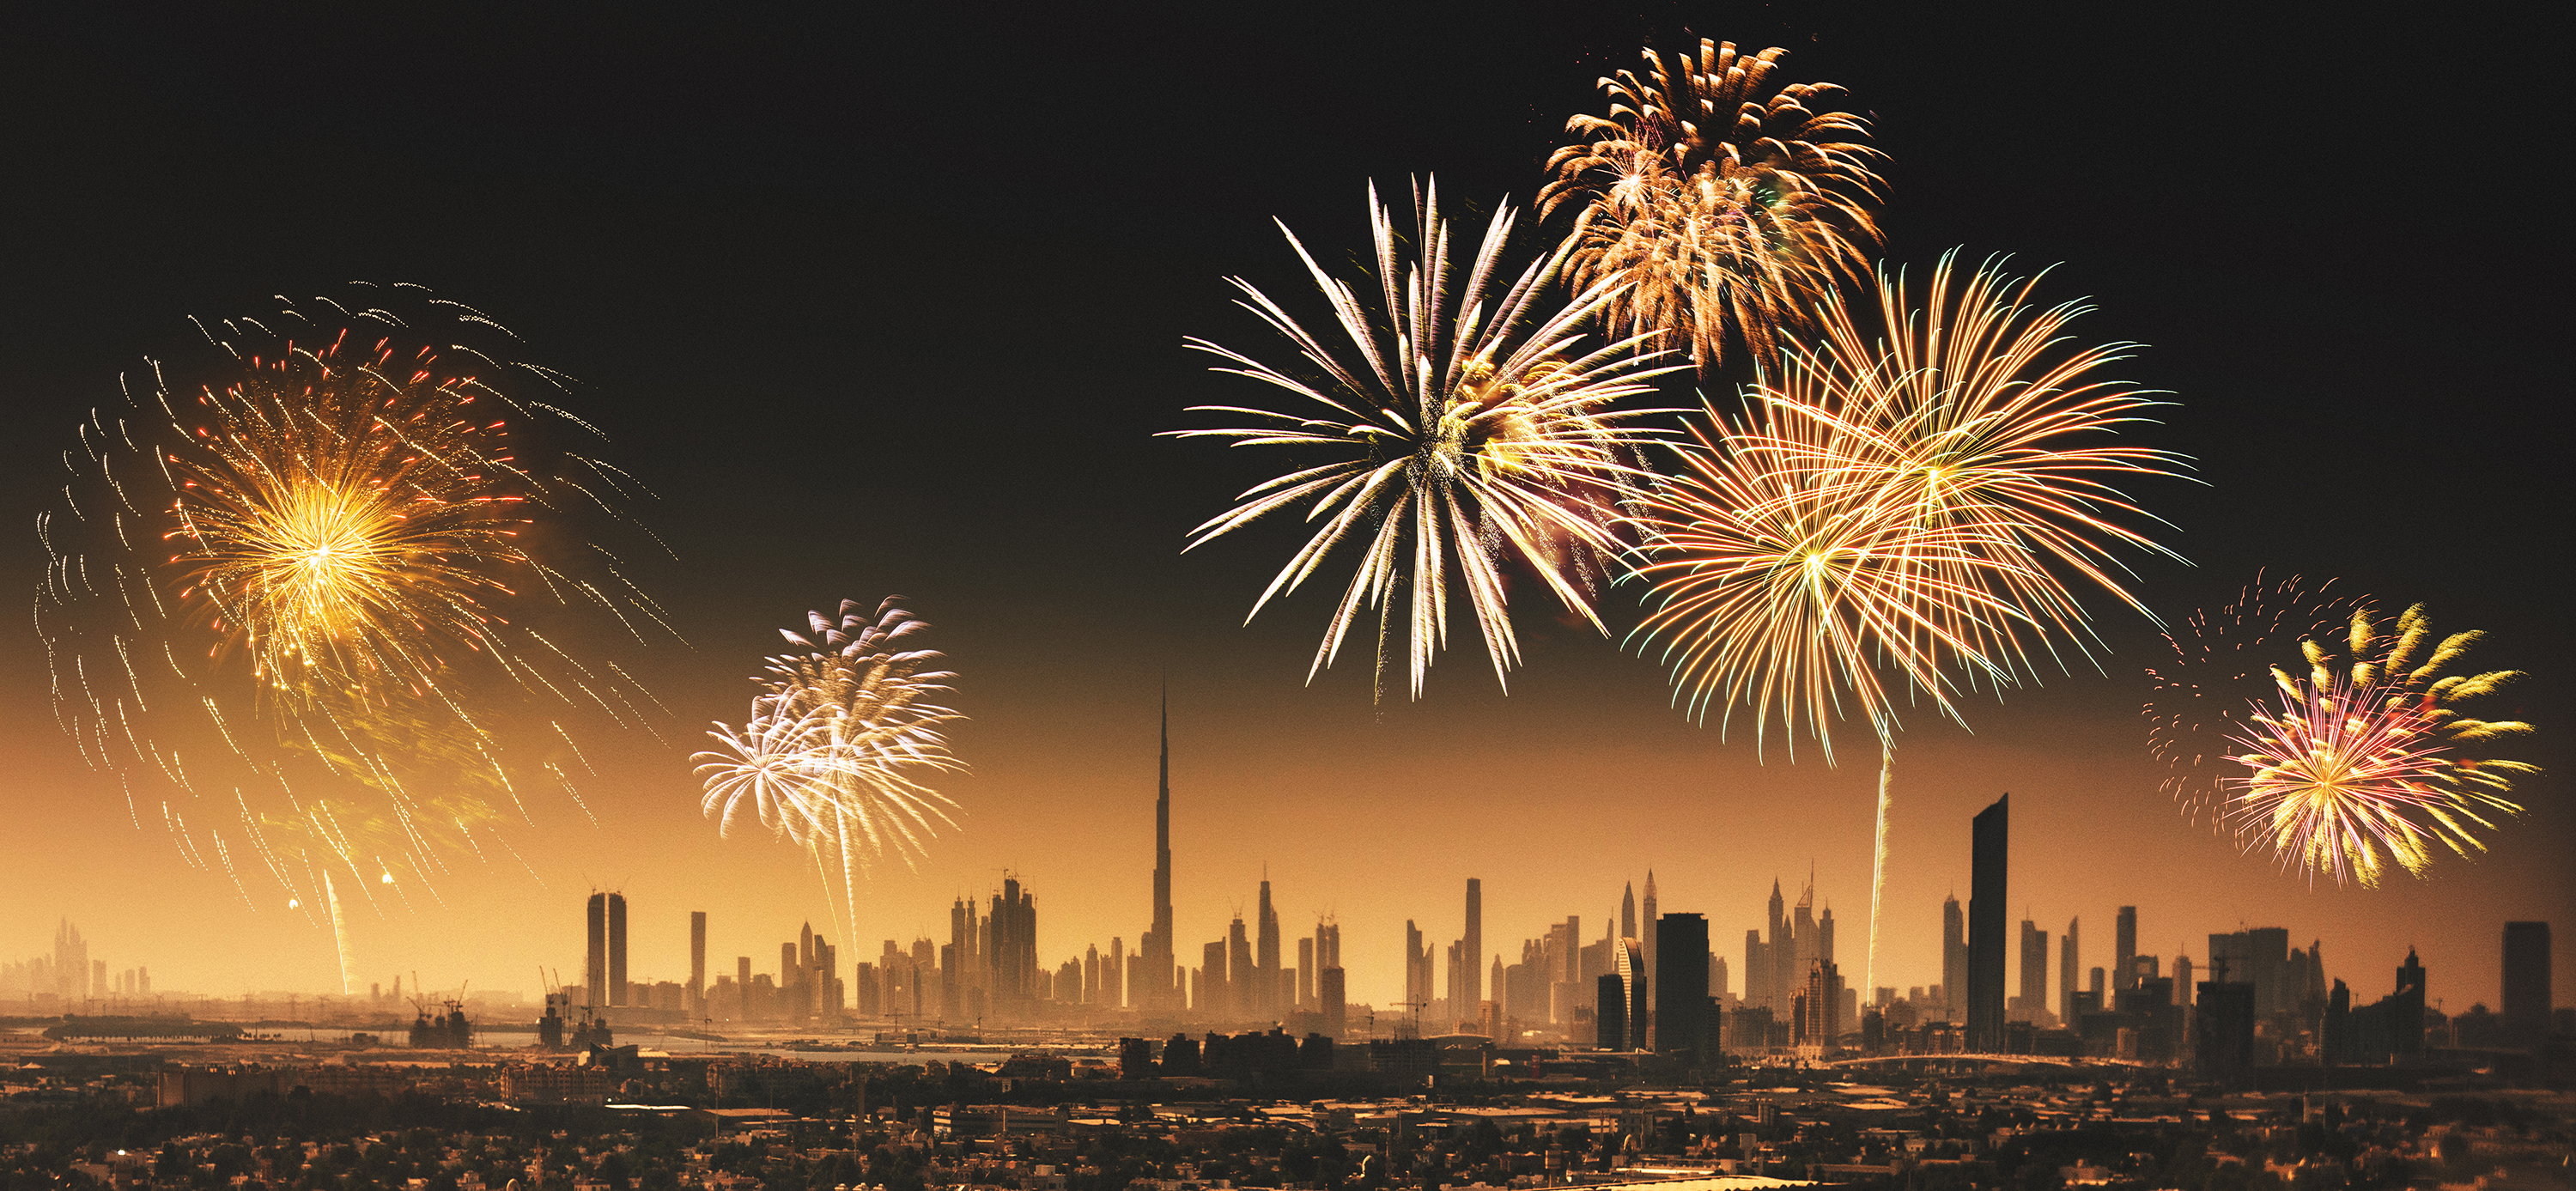 City lights of Dubai downtown with fireworks